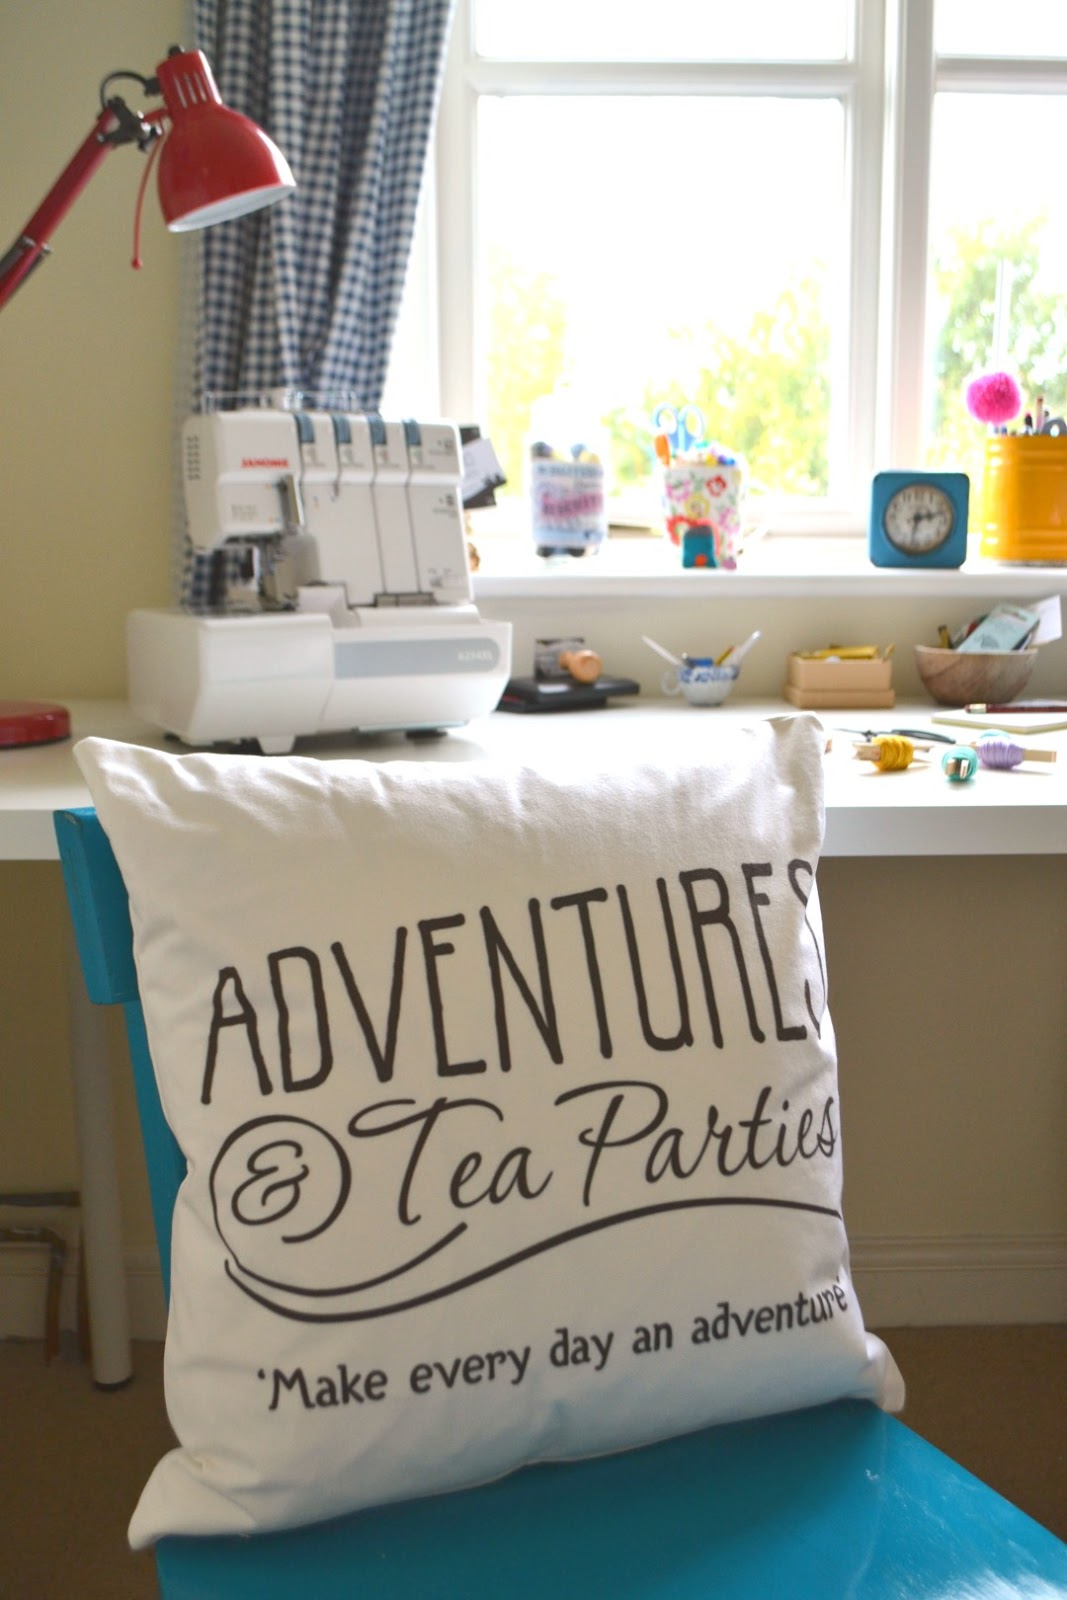 Adventures & Tea Parties Bags of Love Personalised Cushion Review